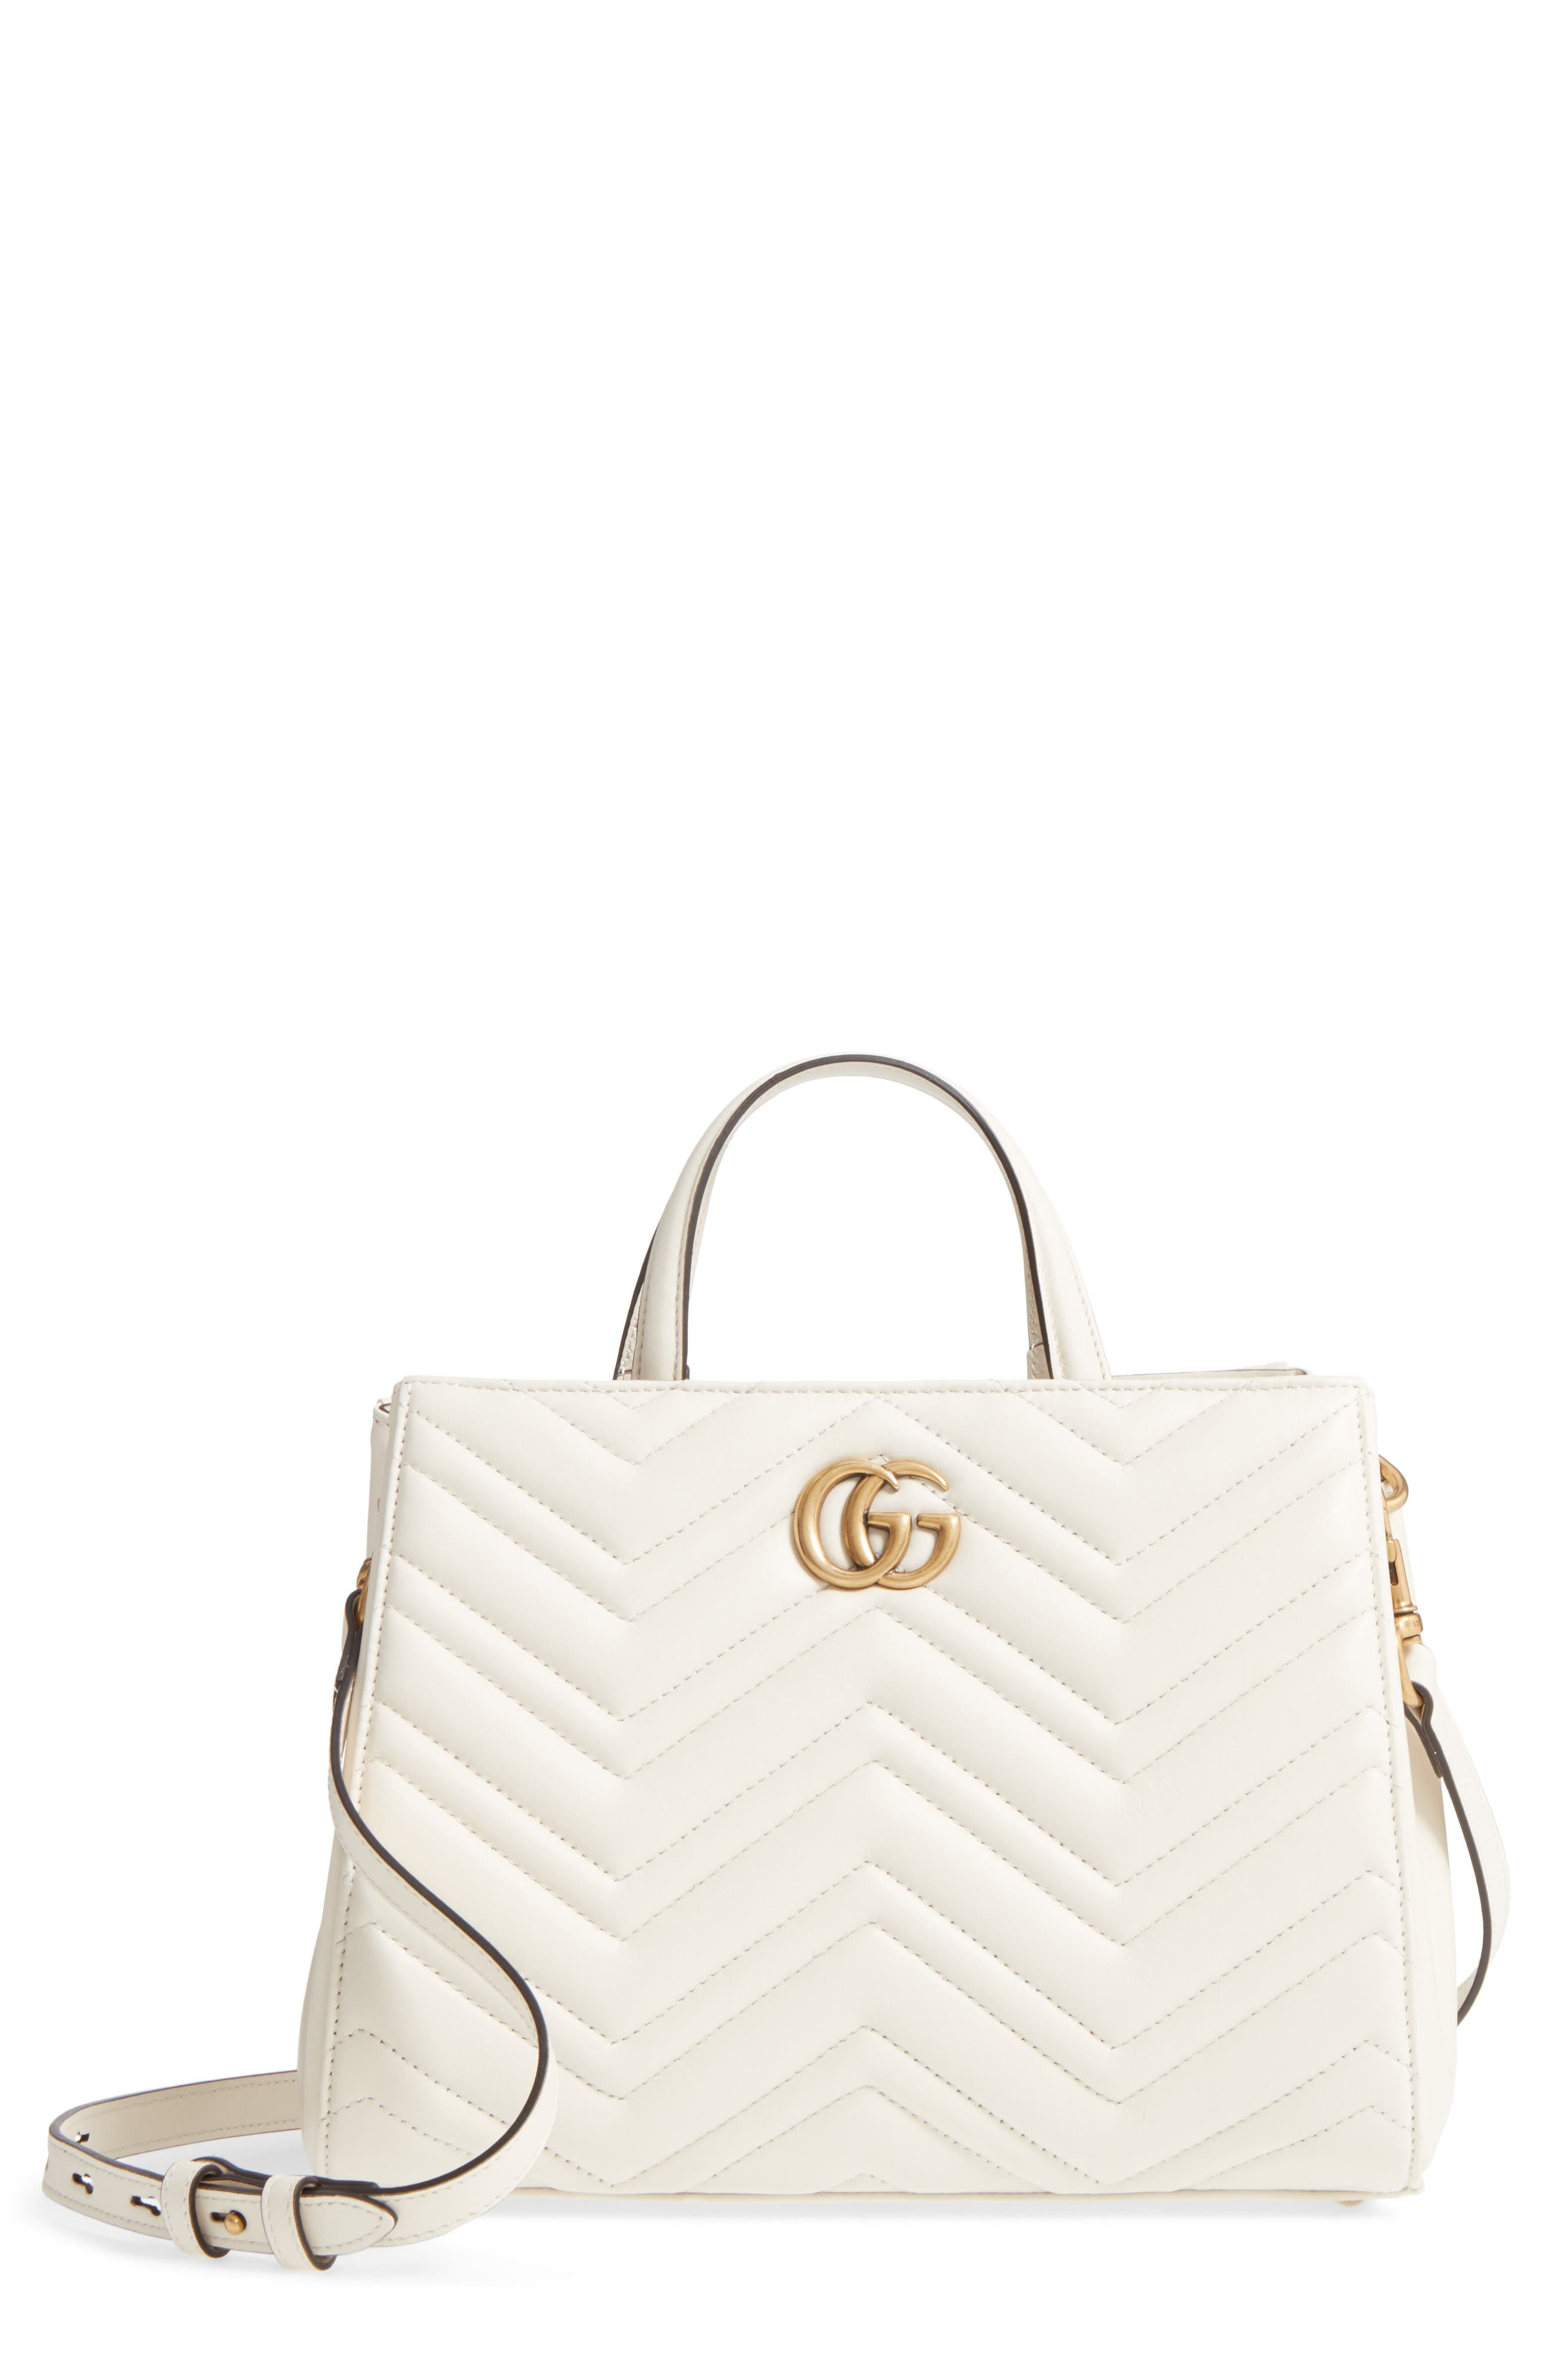 Gucci GG Small Marmont 2.0 Matelassé Leather Top Handle Satchel